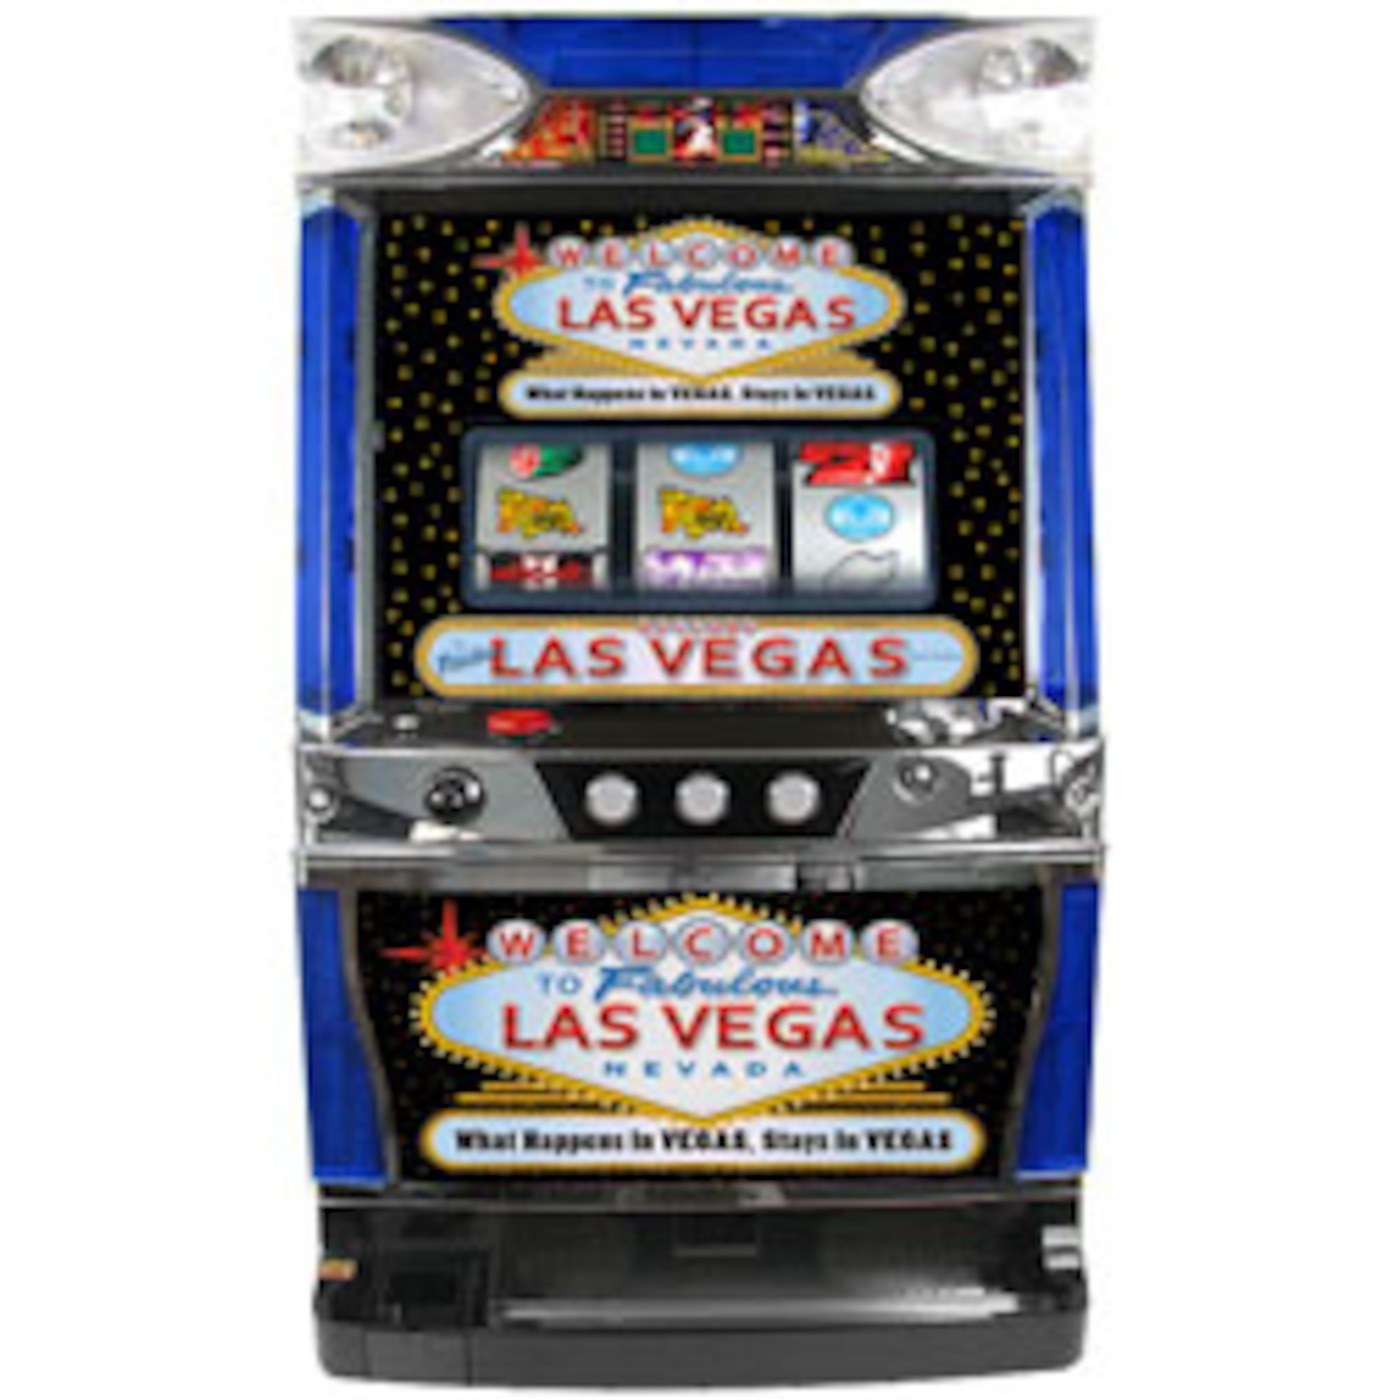 Used slot machines for sale in las vegas nv casino theme clothes